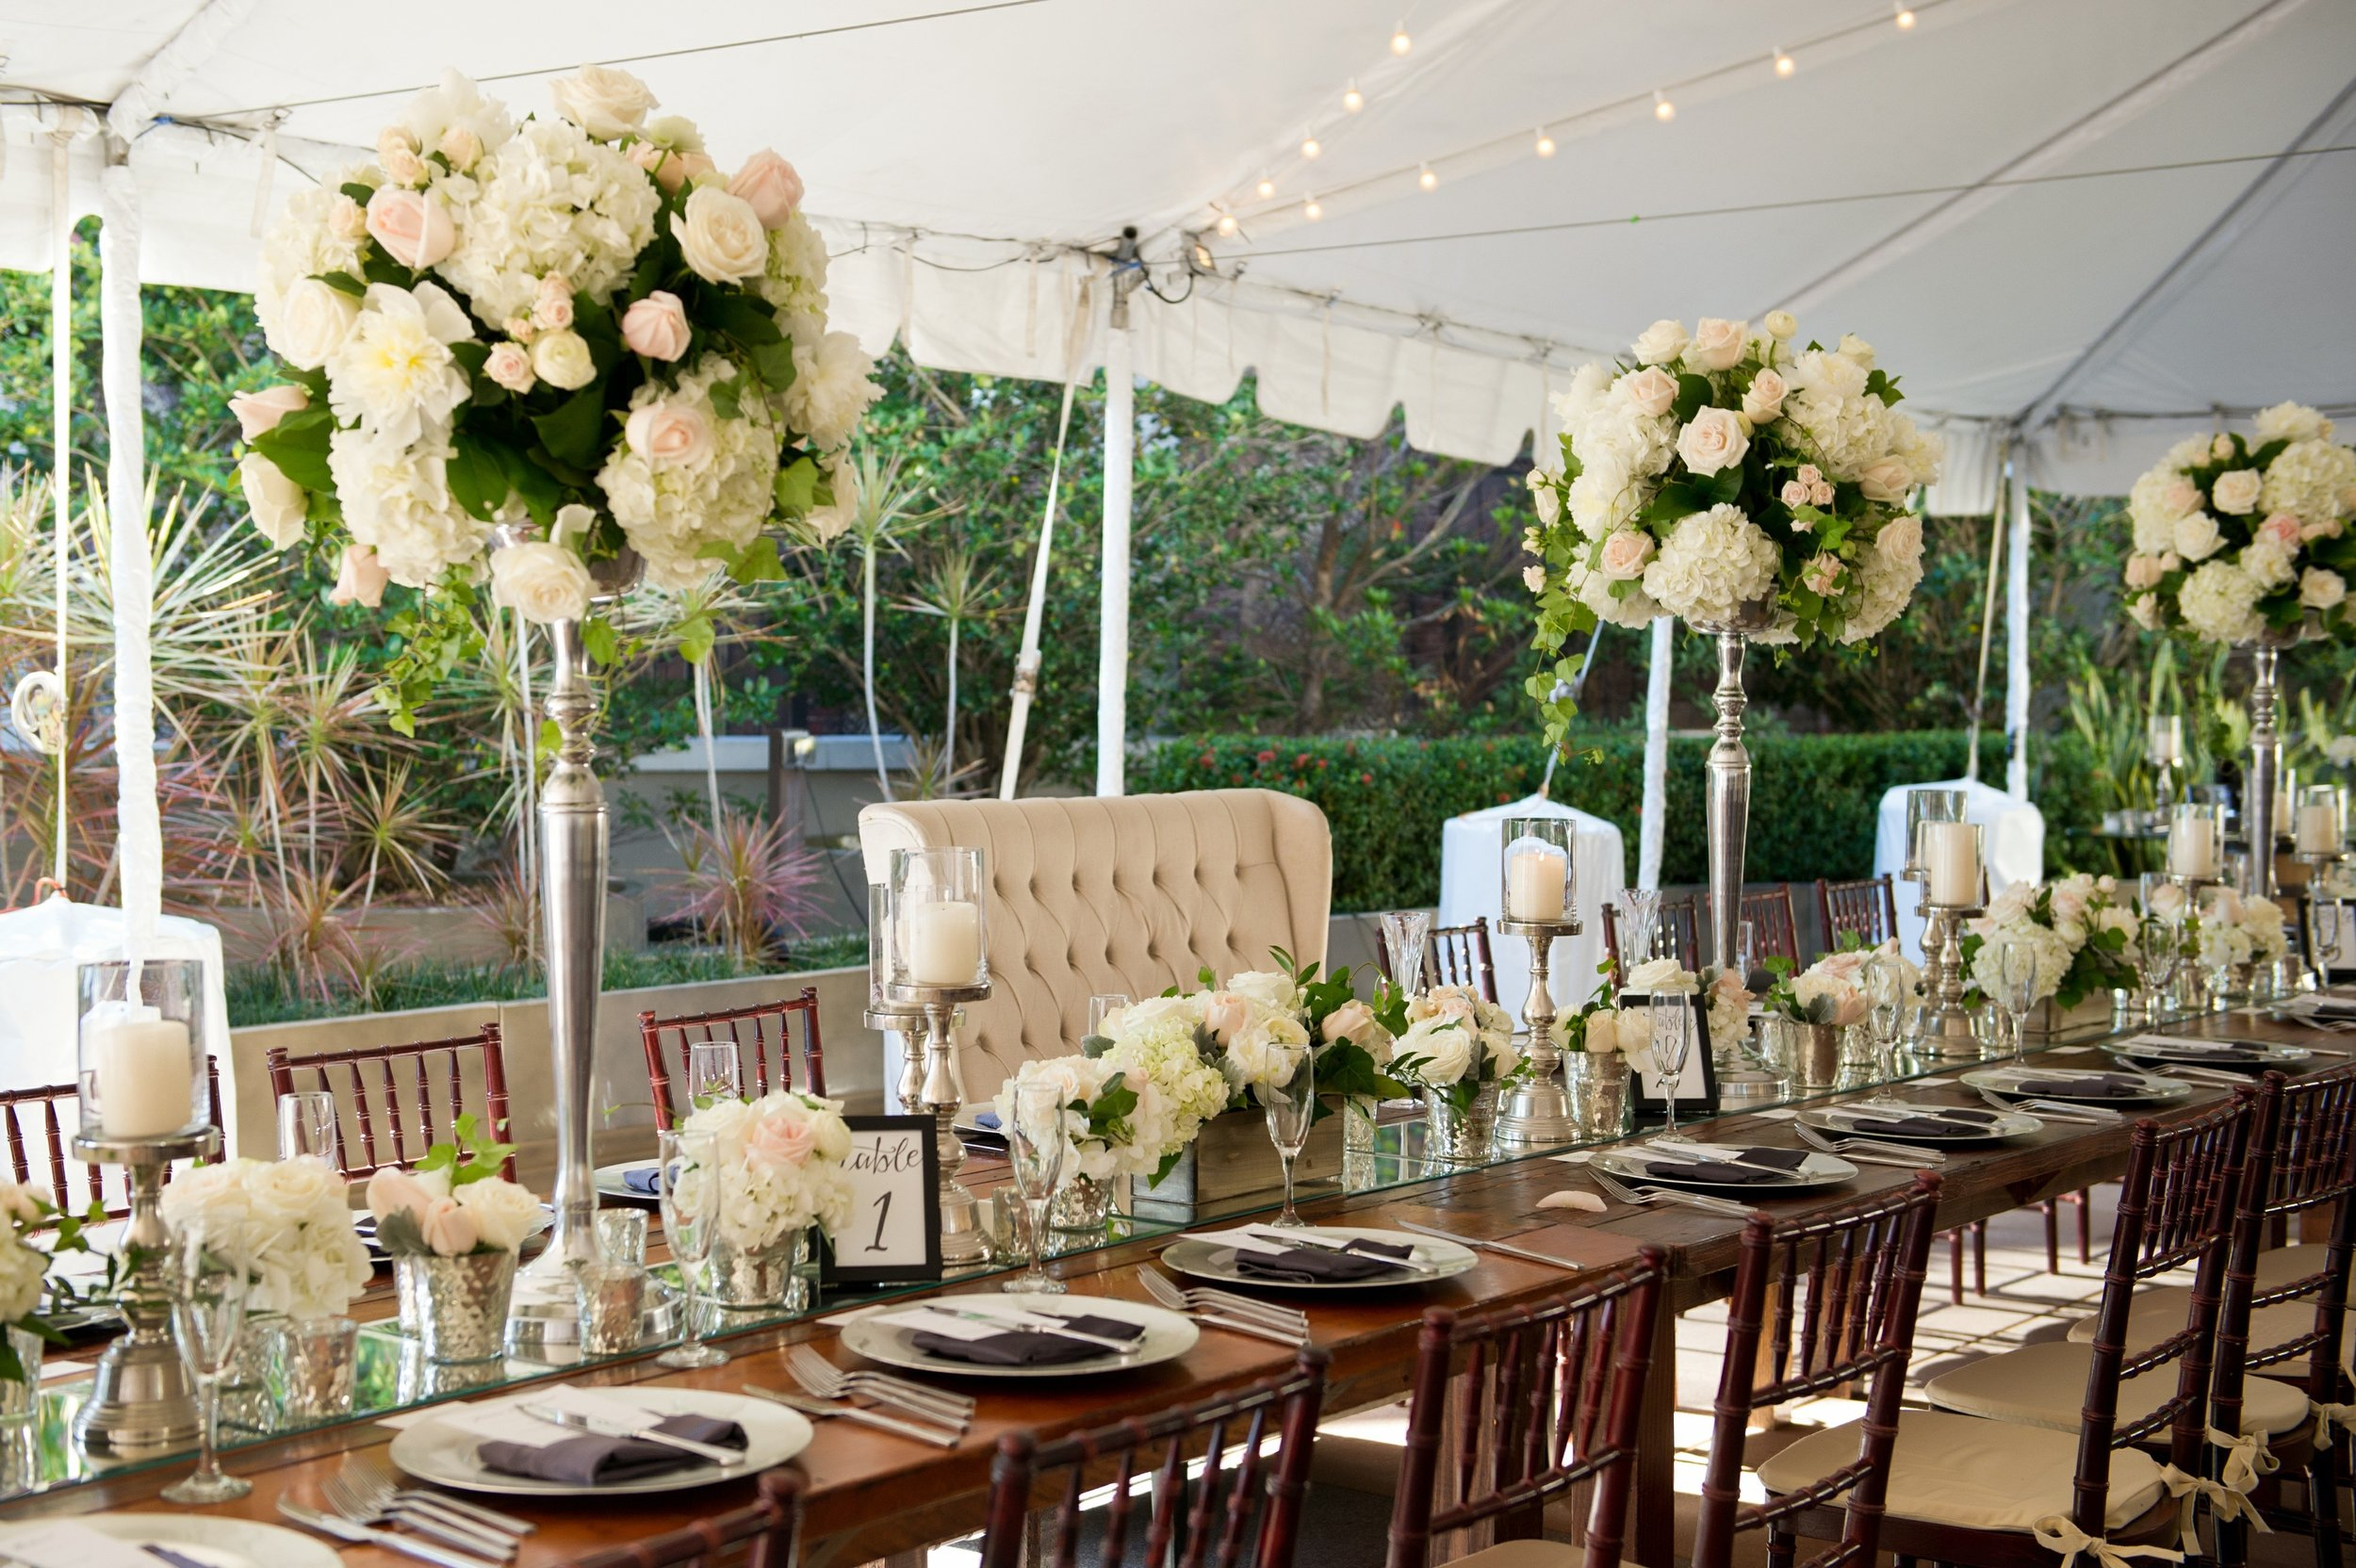 Mirrored table runners boasted silver candlesticks and wood hedge boxes of bountiful flora, with towering loose arrangements accenting the head table and a plush tufted loveseat for the bride and groom.